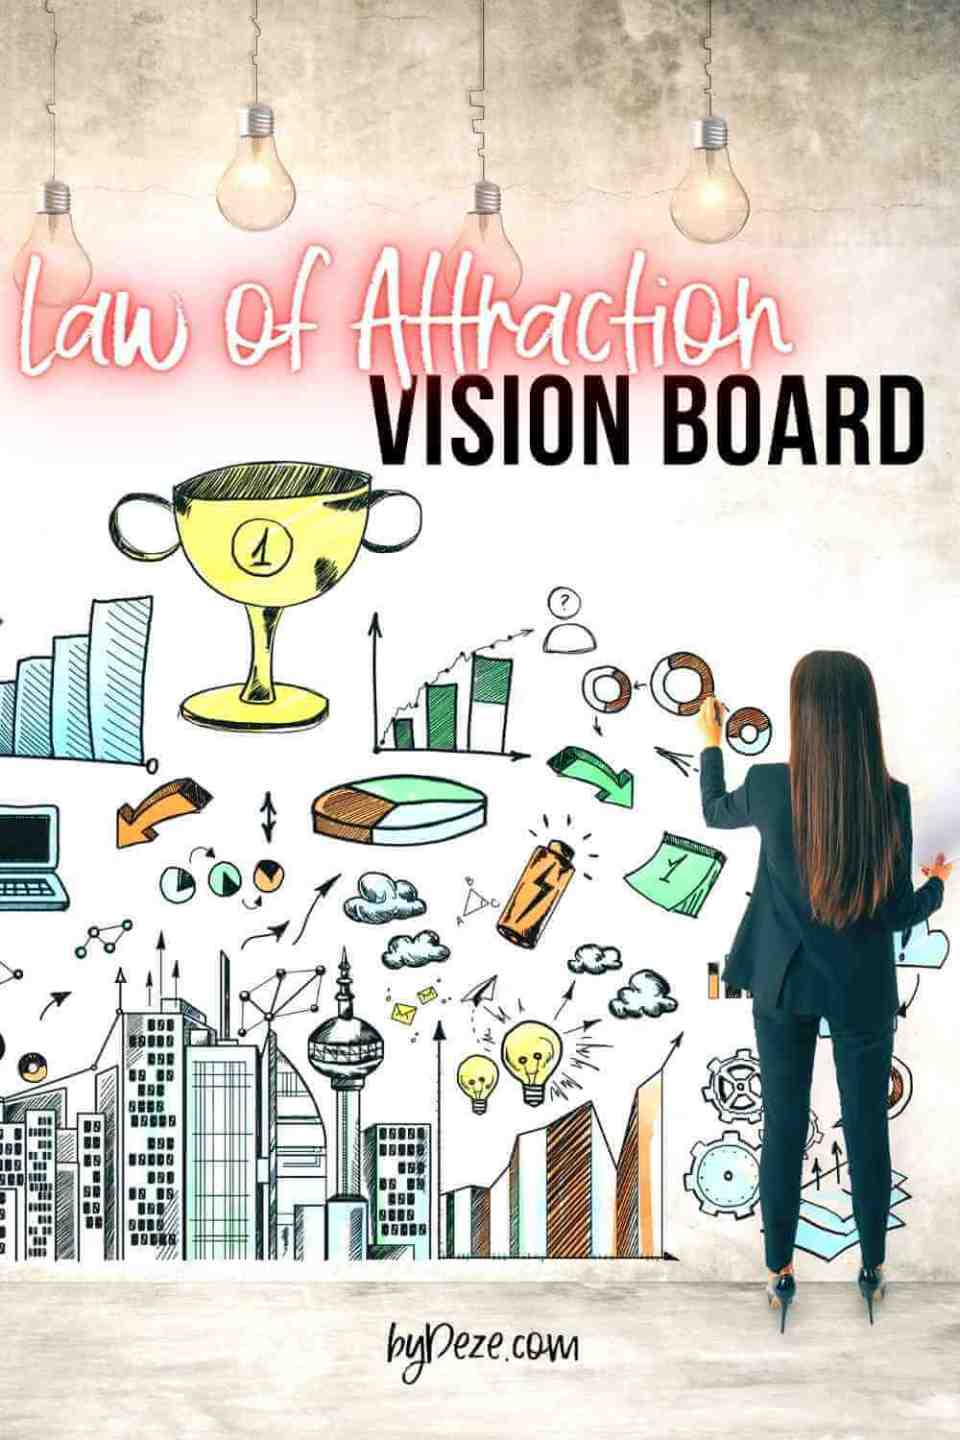 a law of attraction vision board